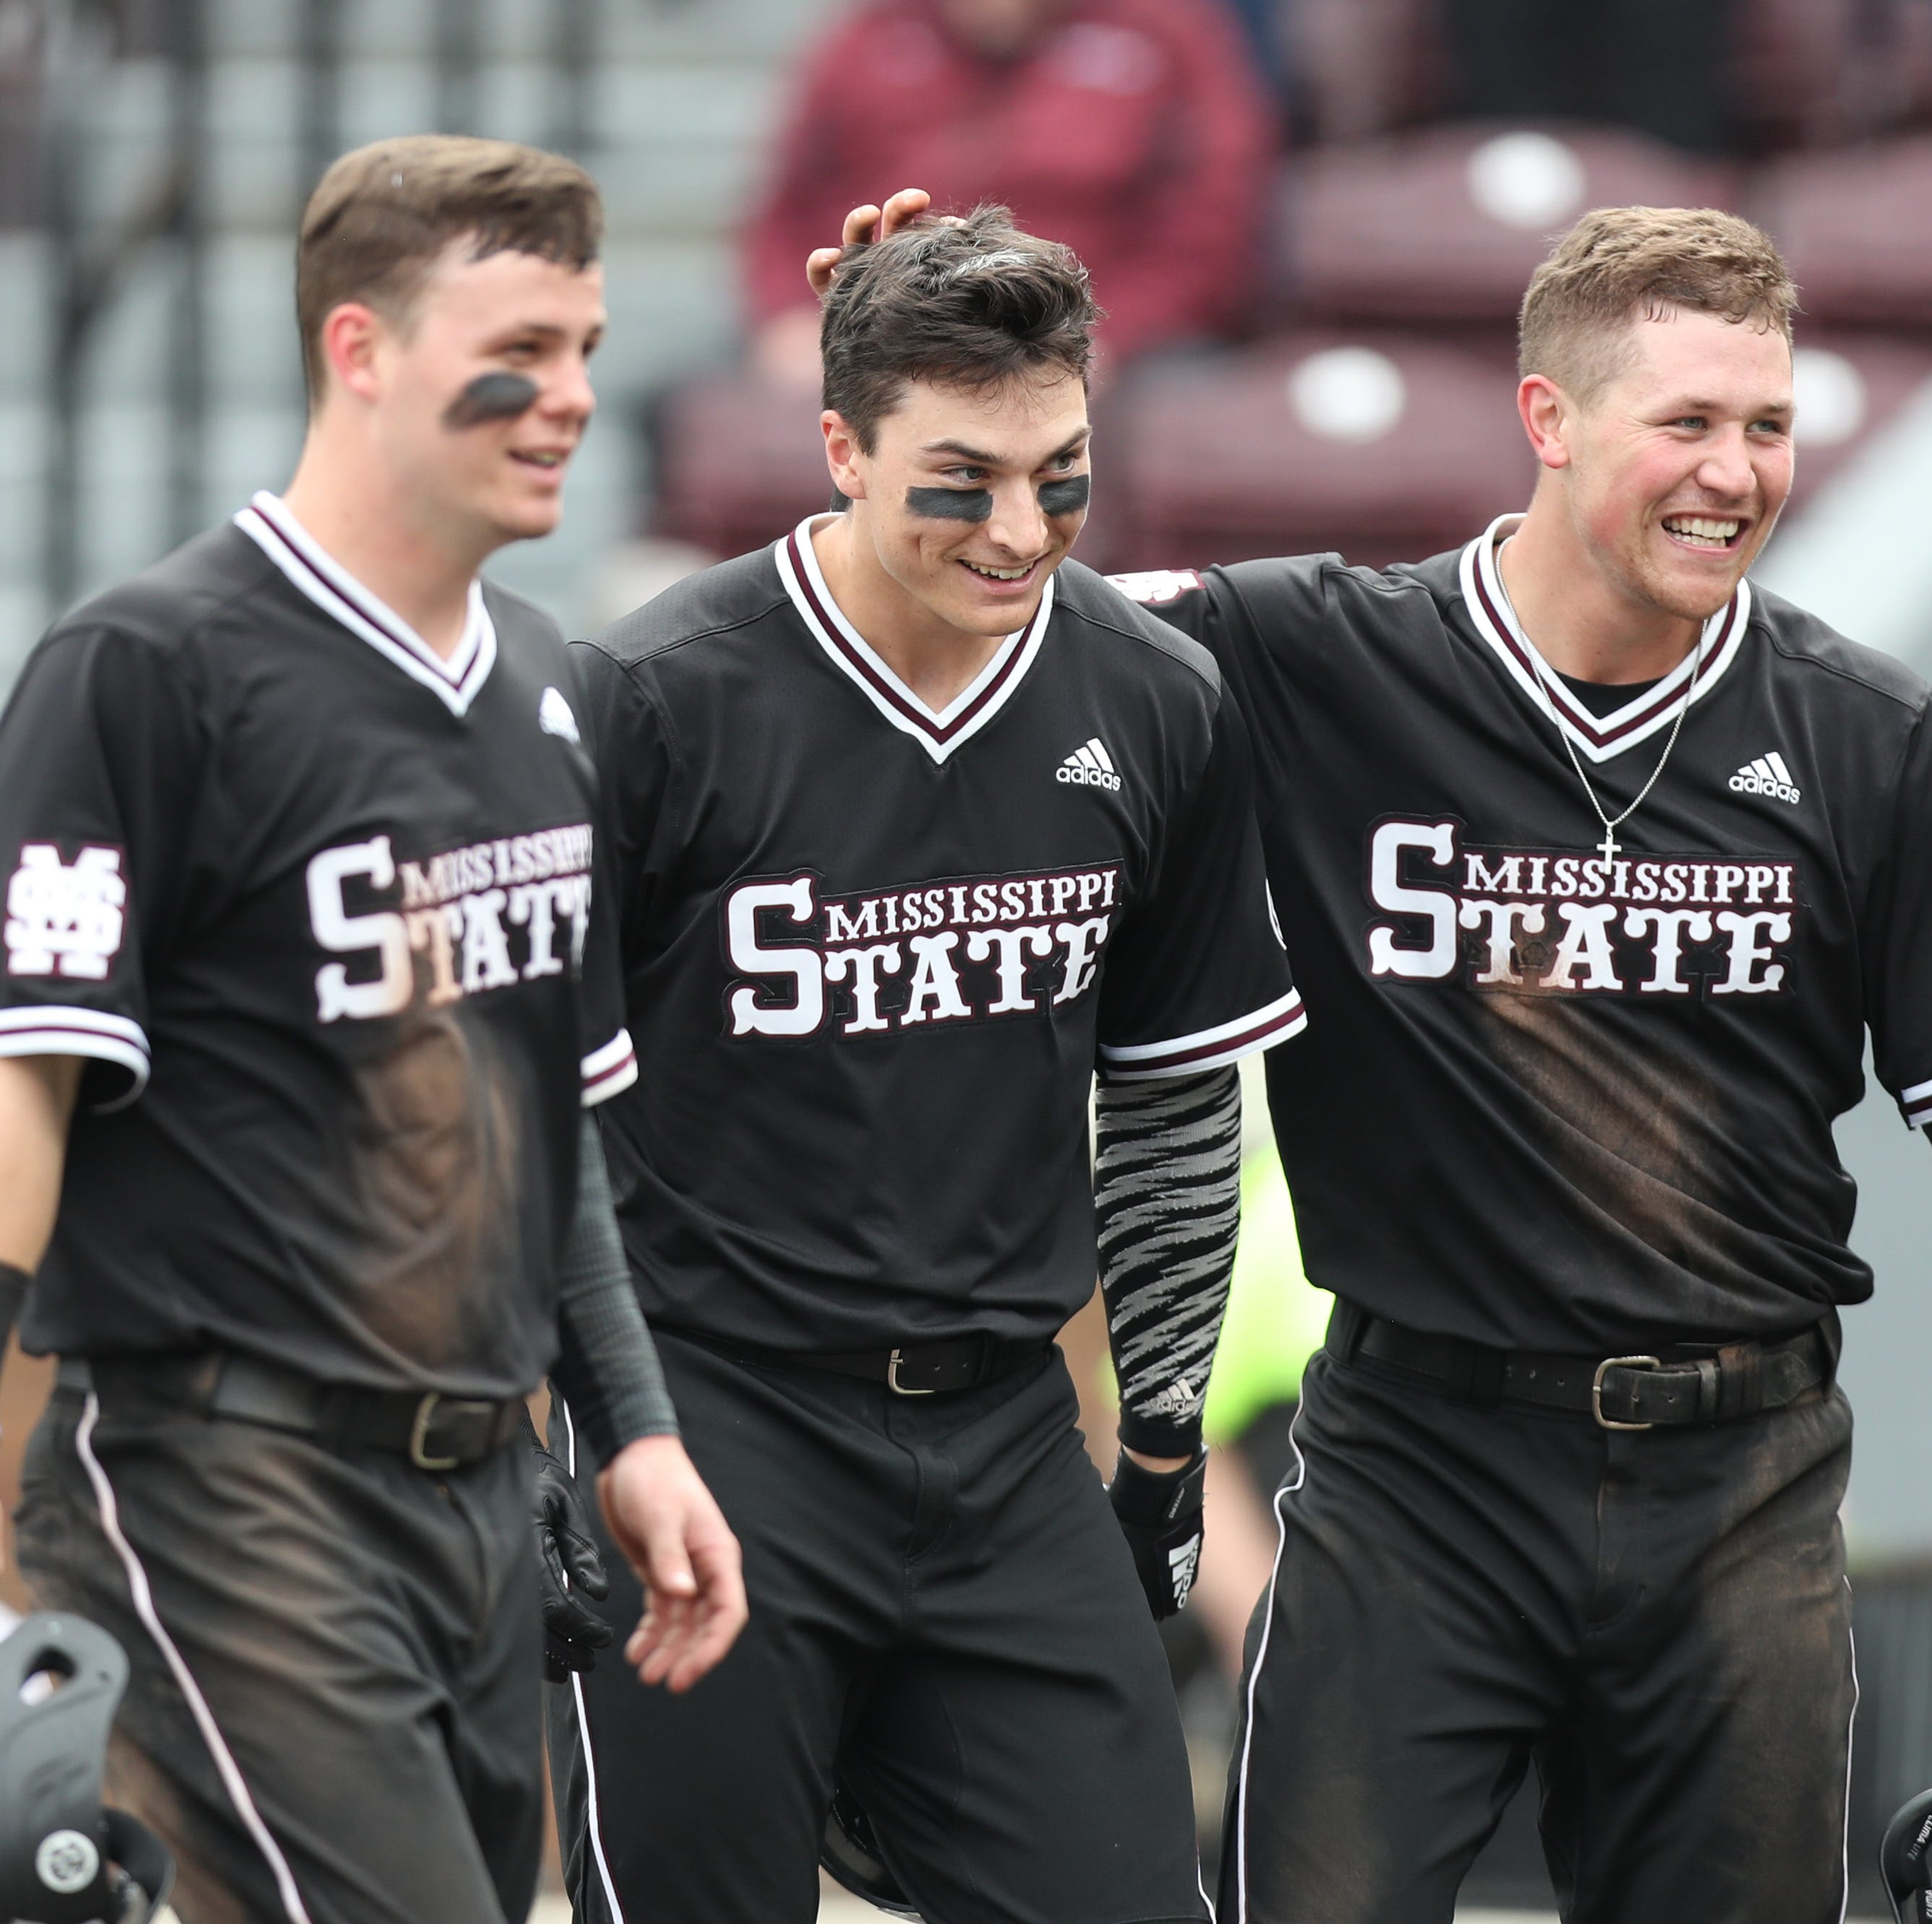 Mississippi State bats erupt for 6-run inning to come back, win series at Ole Miss